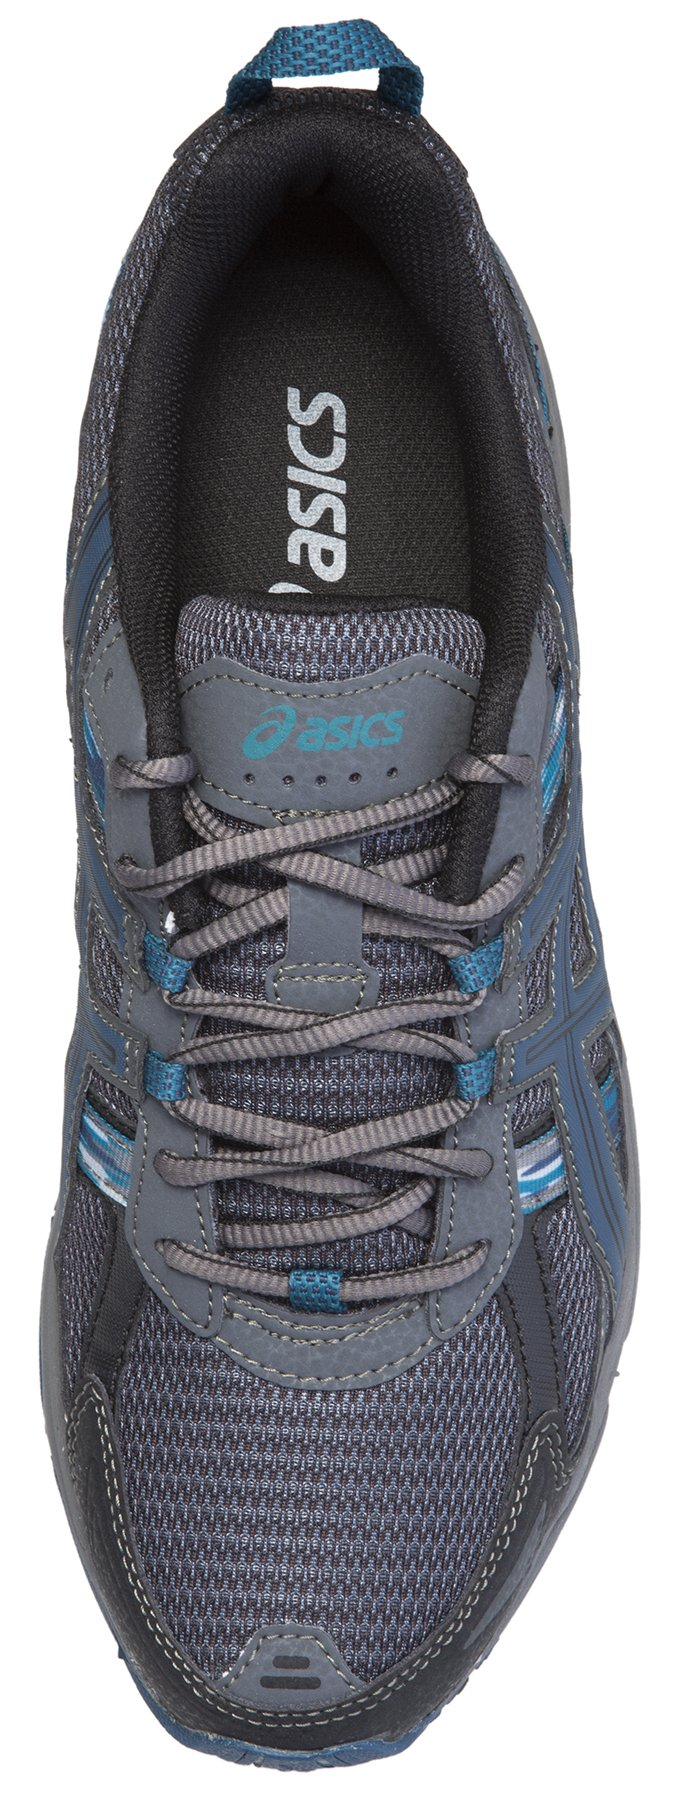 ASICS Men's Gel-Venture 5 Running Shoe (7.5 D(M) US, Black/Ink/Ocean) by ASICS (Image #7)